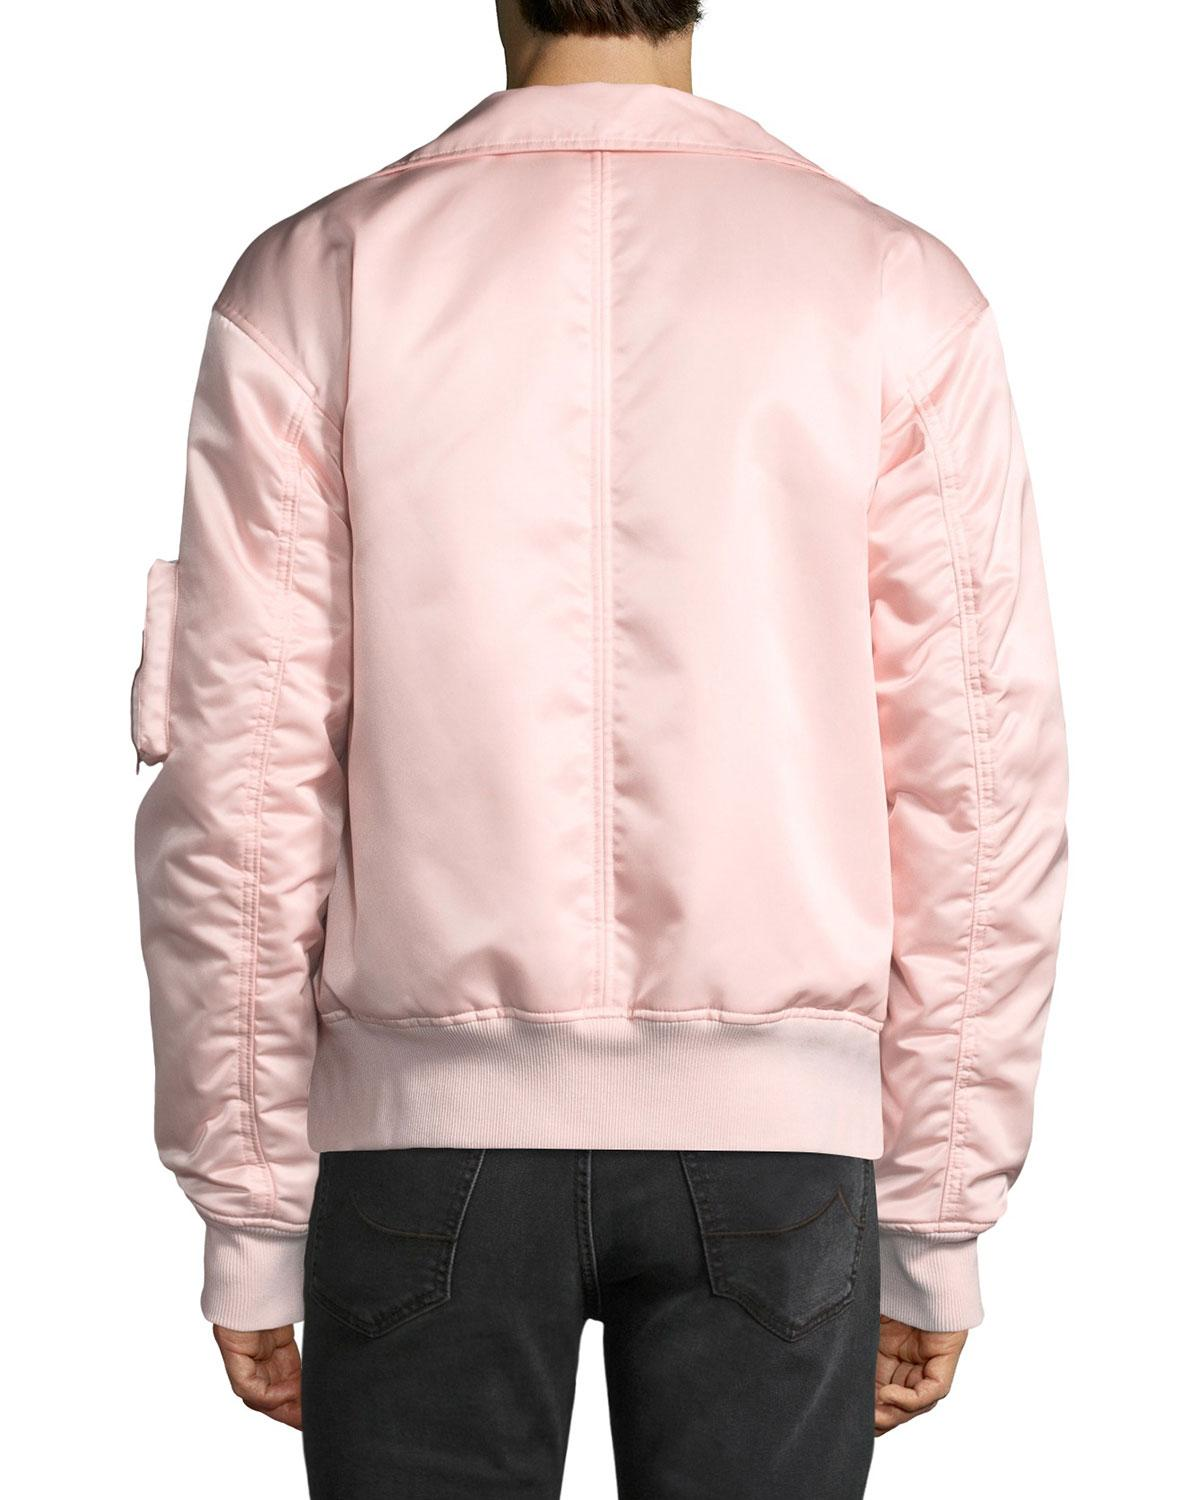 e4e821dcb Lyst - Helmut Lang Men's Panel-neck Satin Bomber Jacket in Pink for Men